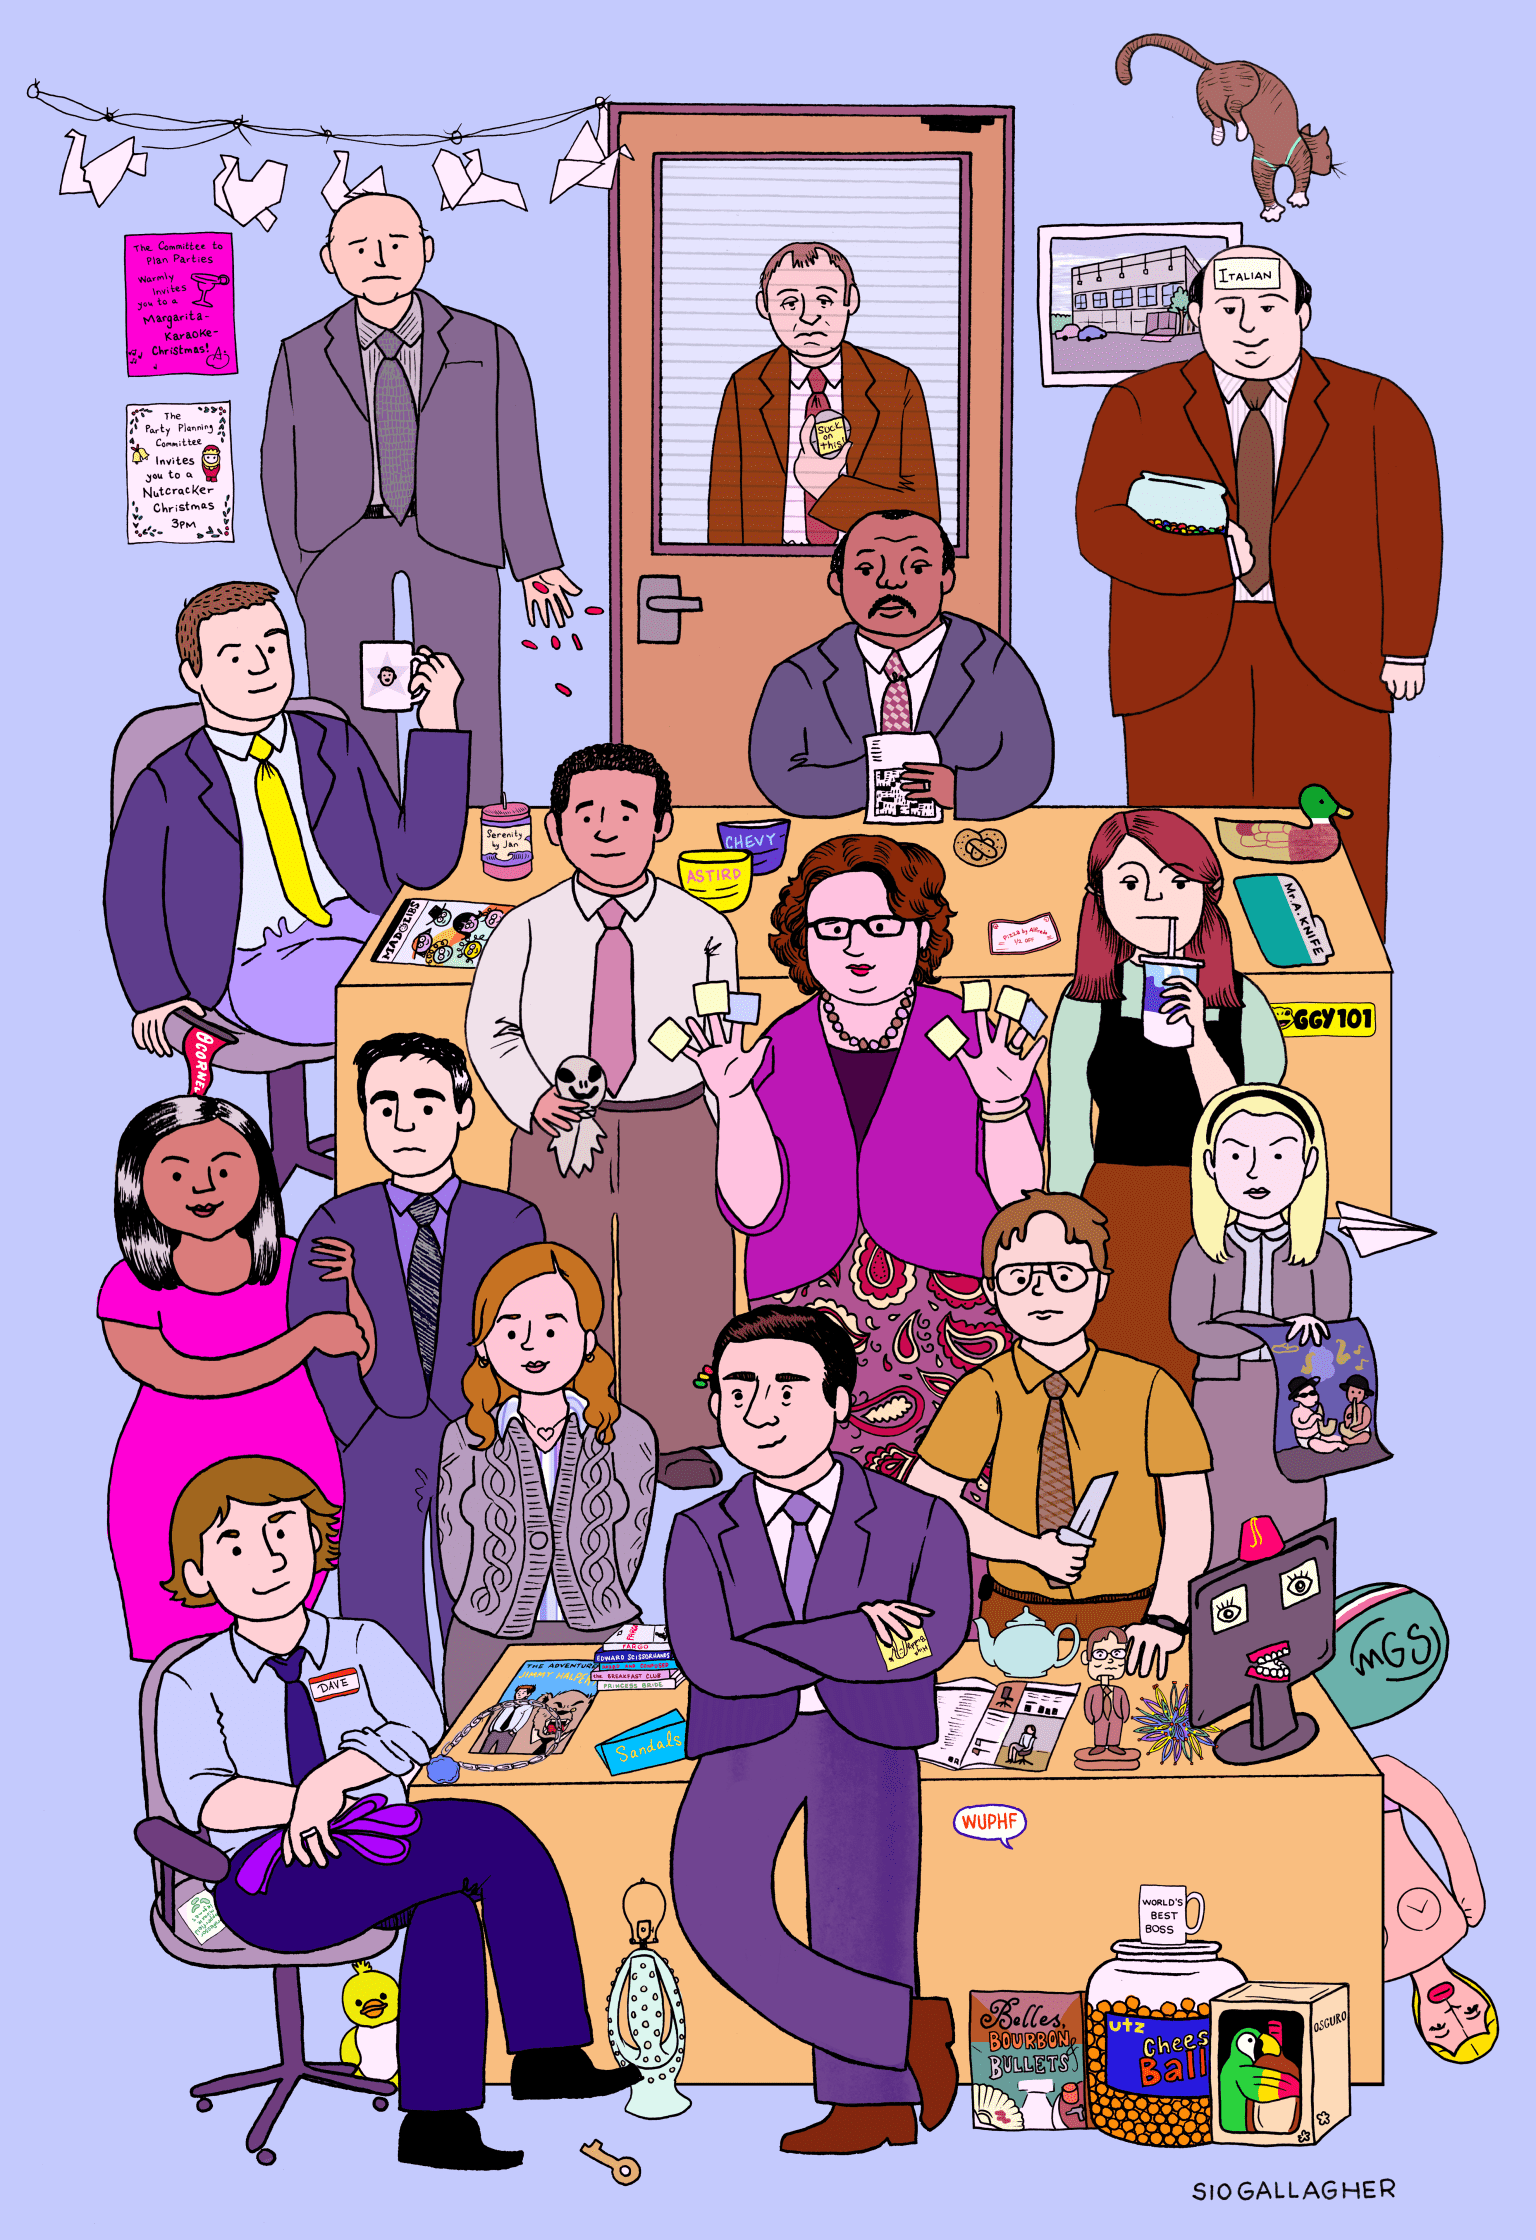 The Office poster